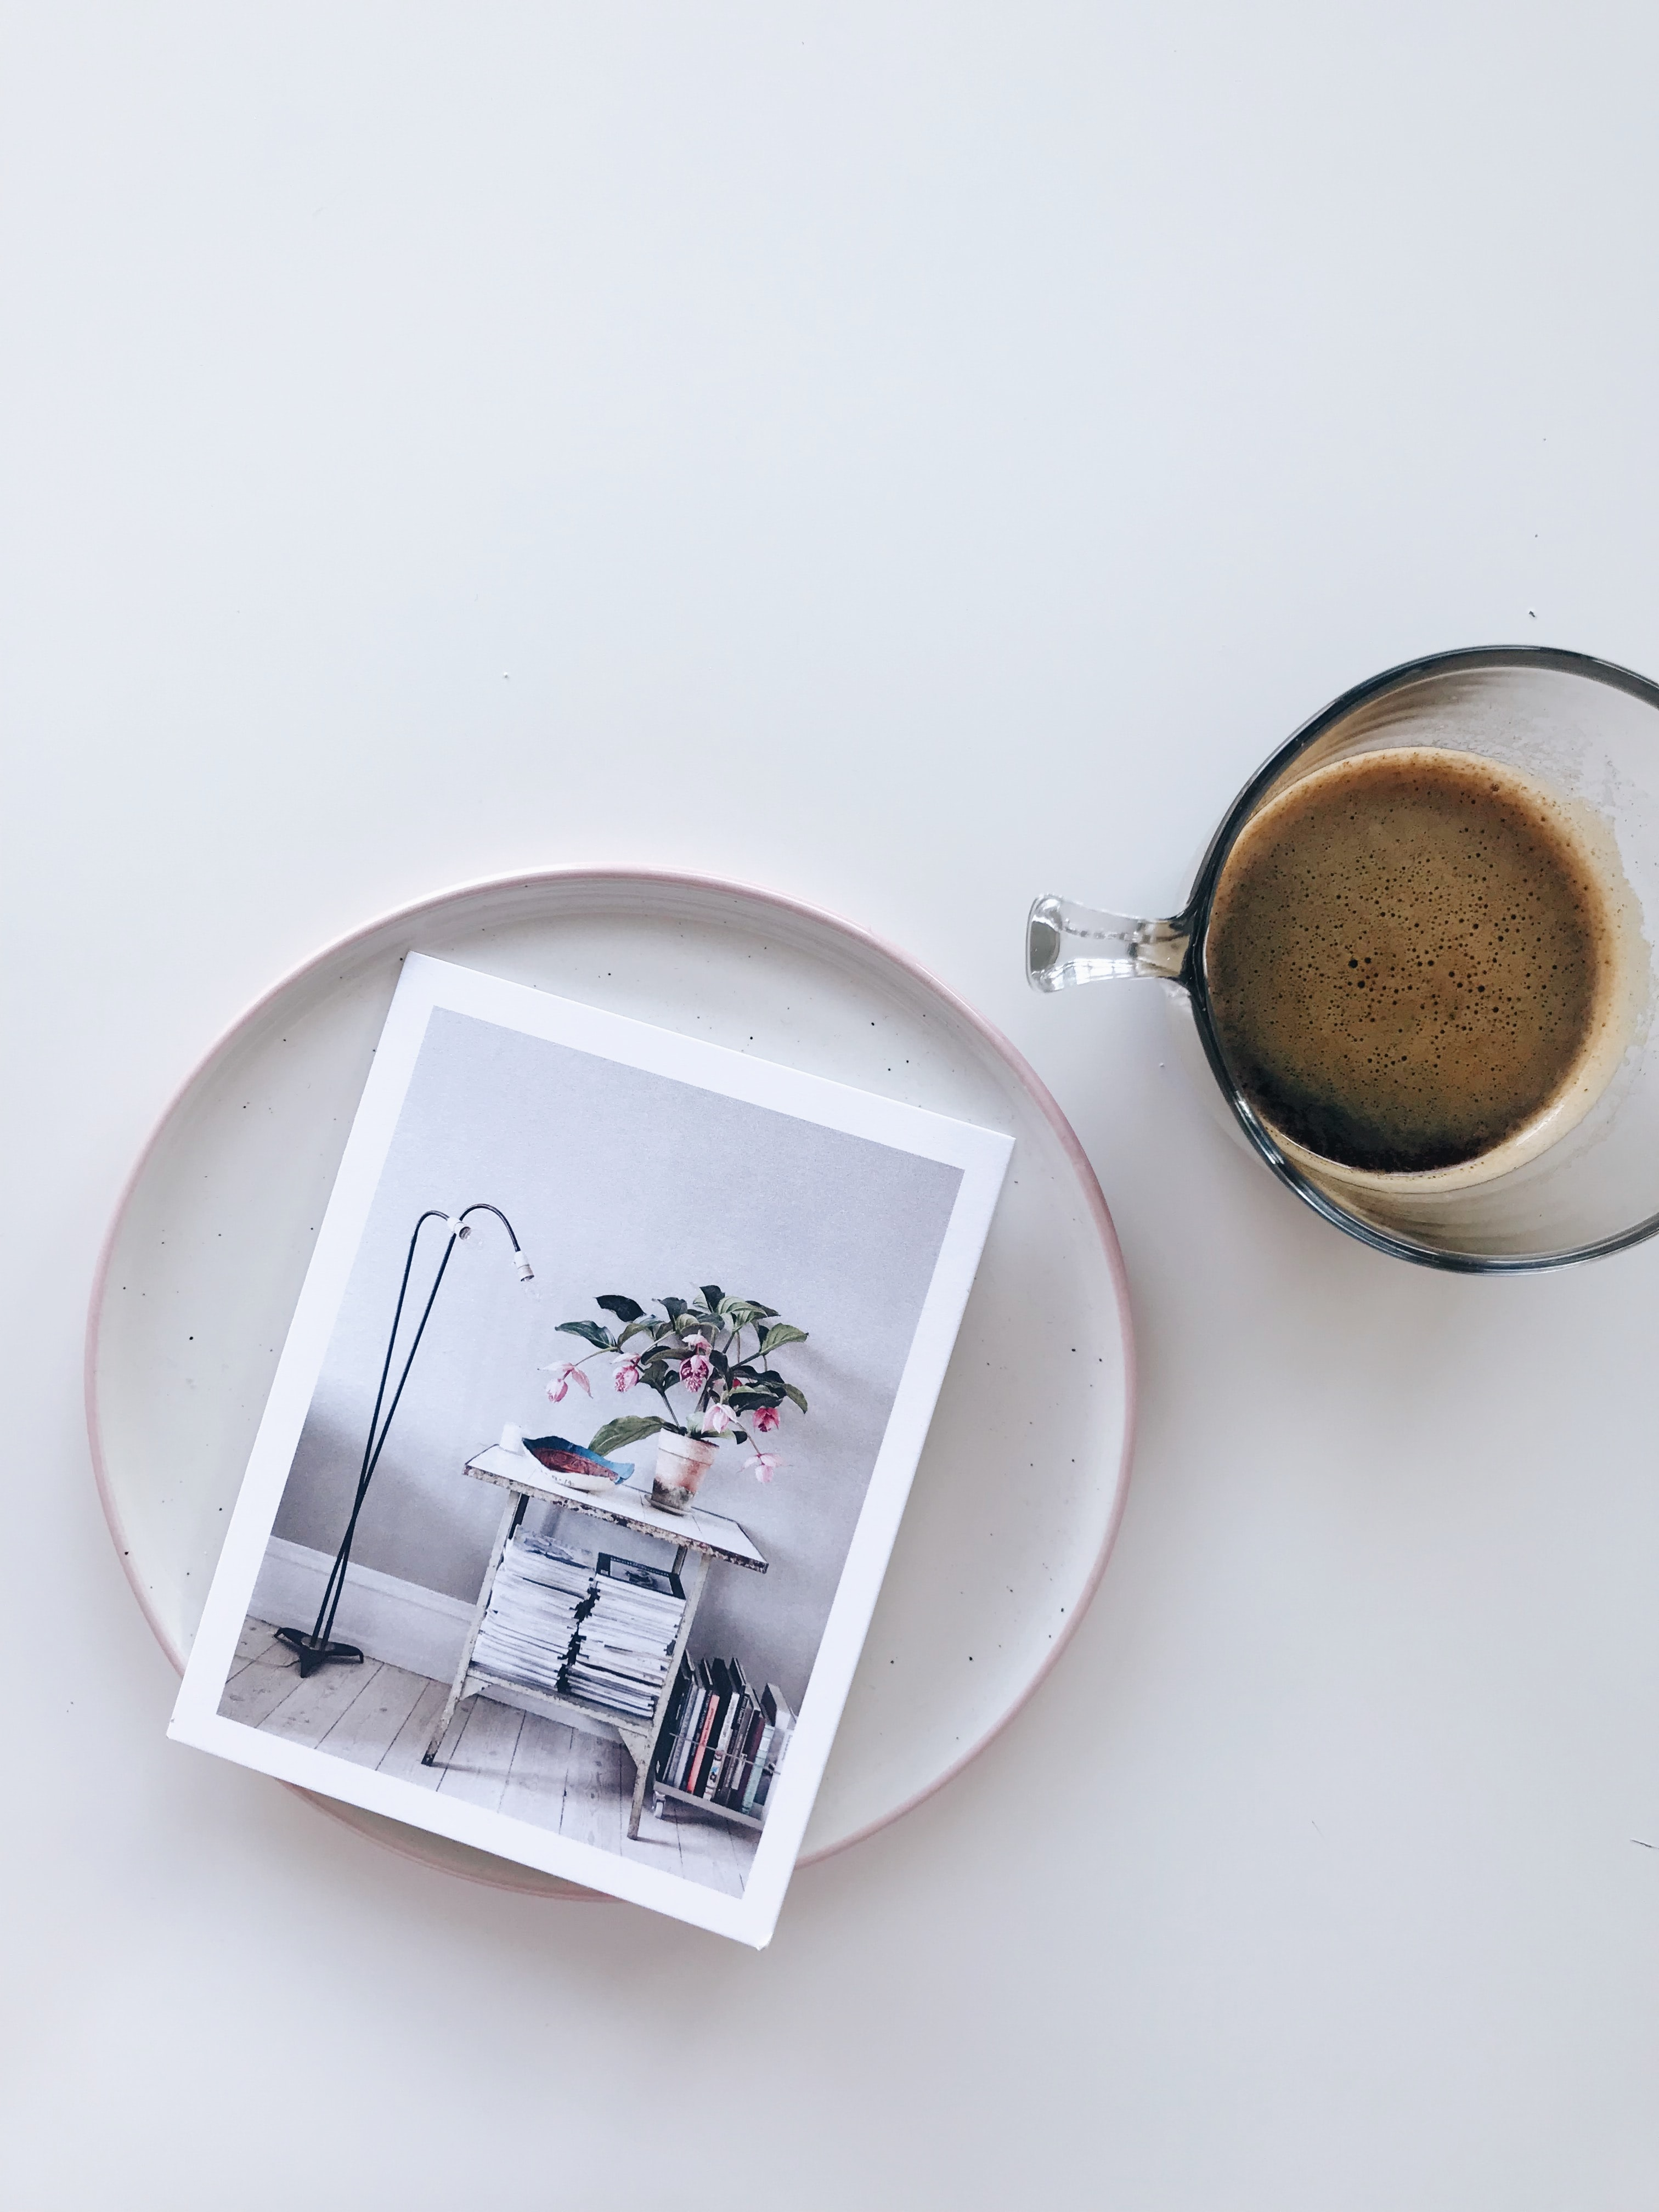 glass cup beside a photo on top of a tray